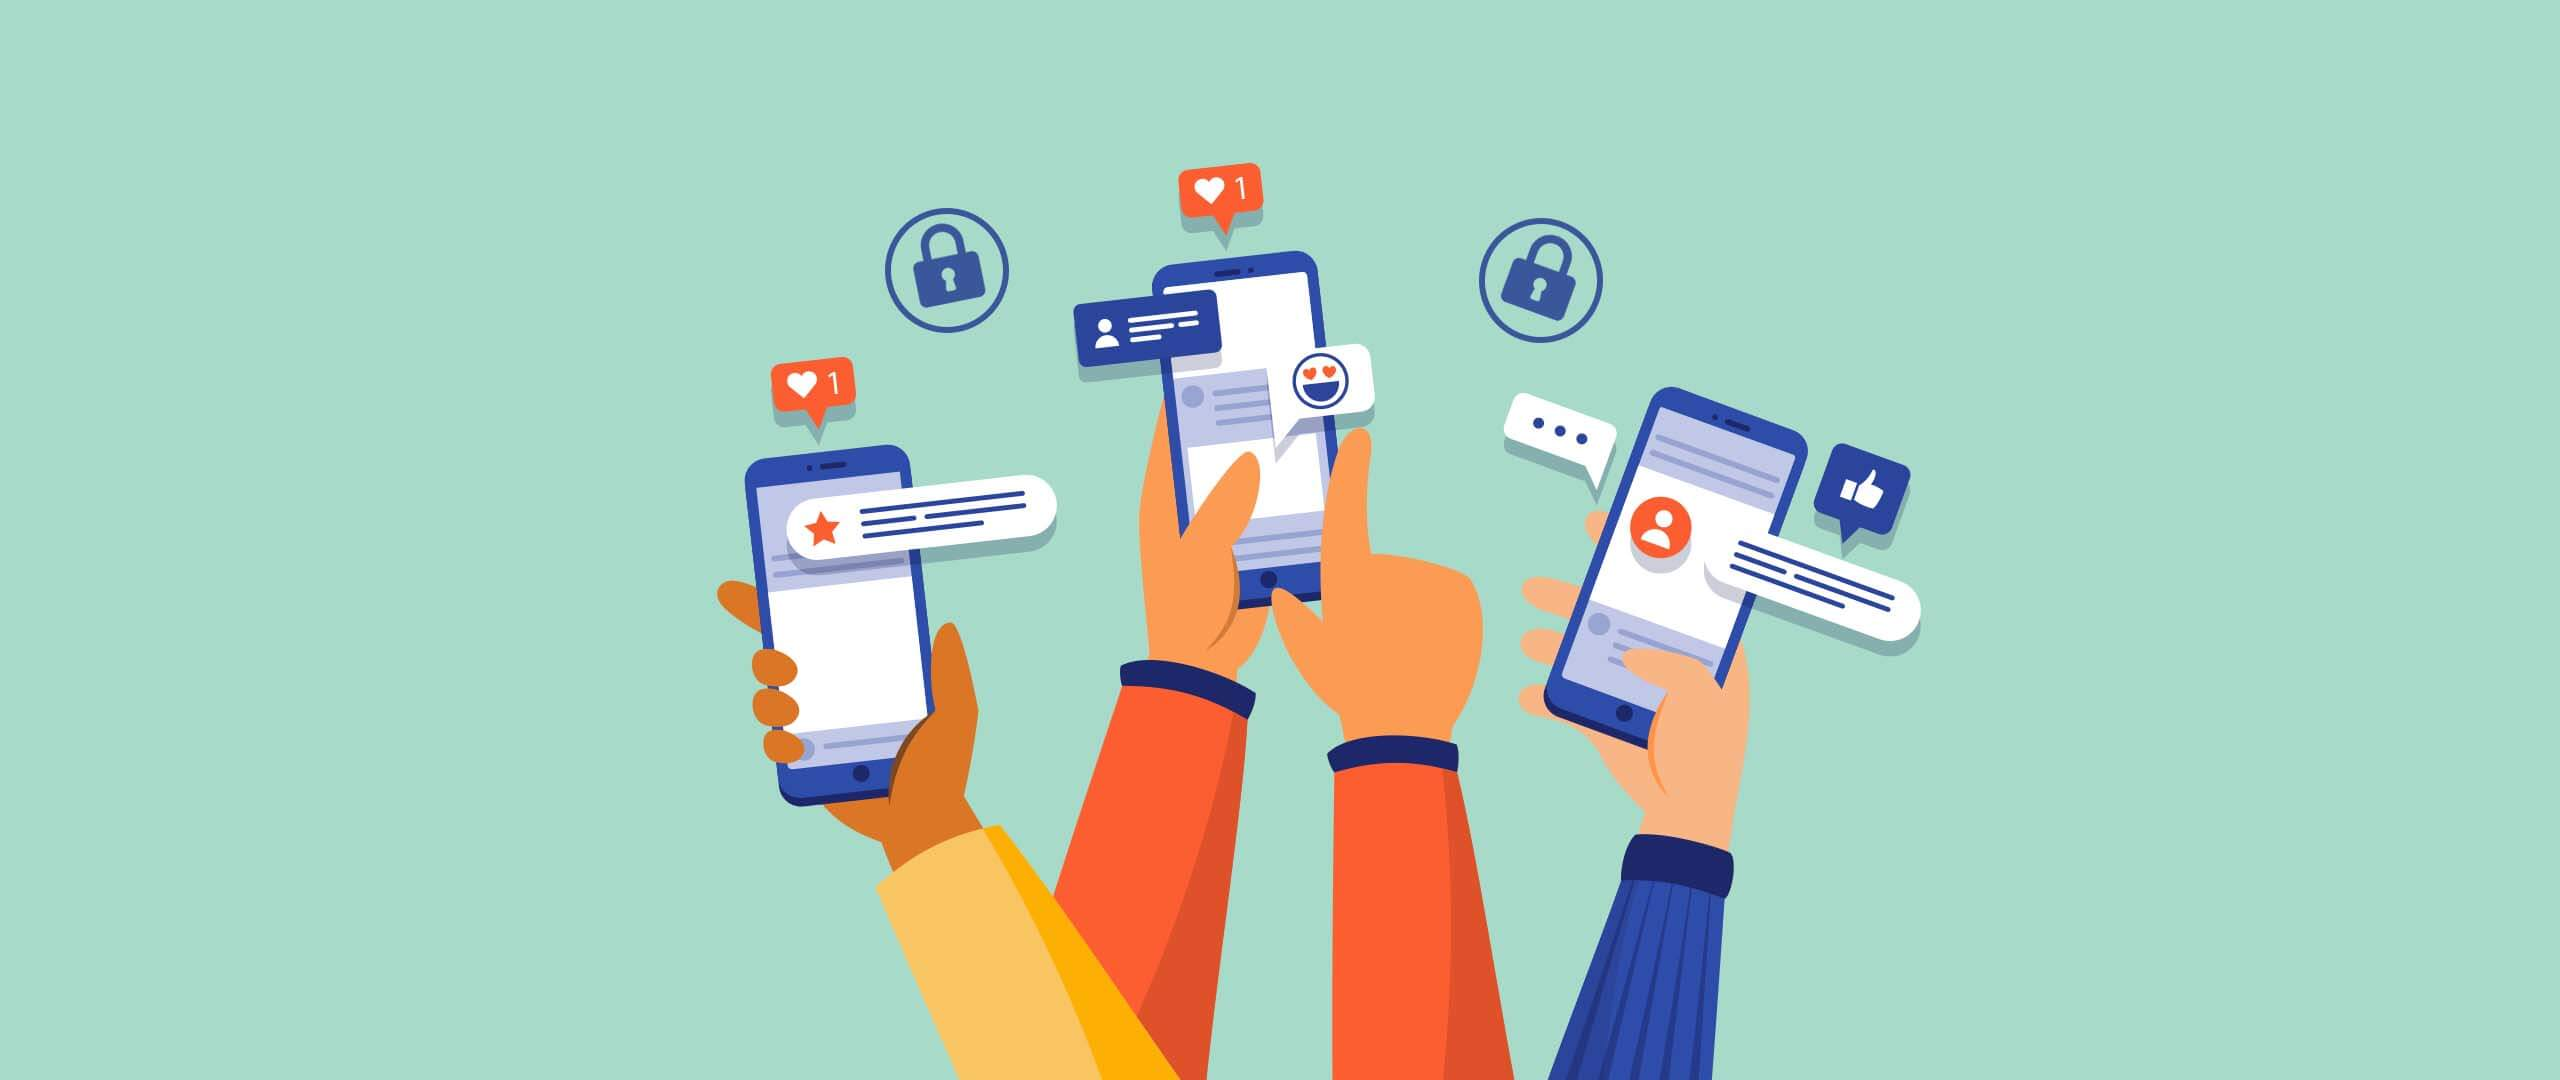 4 Social Media Safety Tips To Secure Social Network Accounts